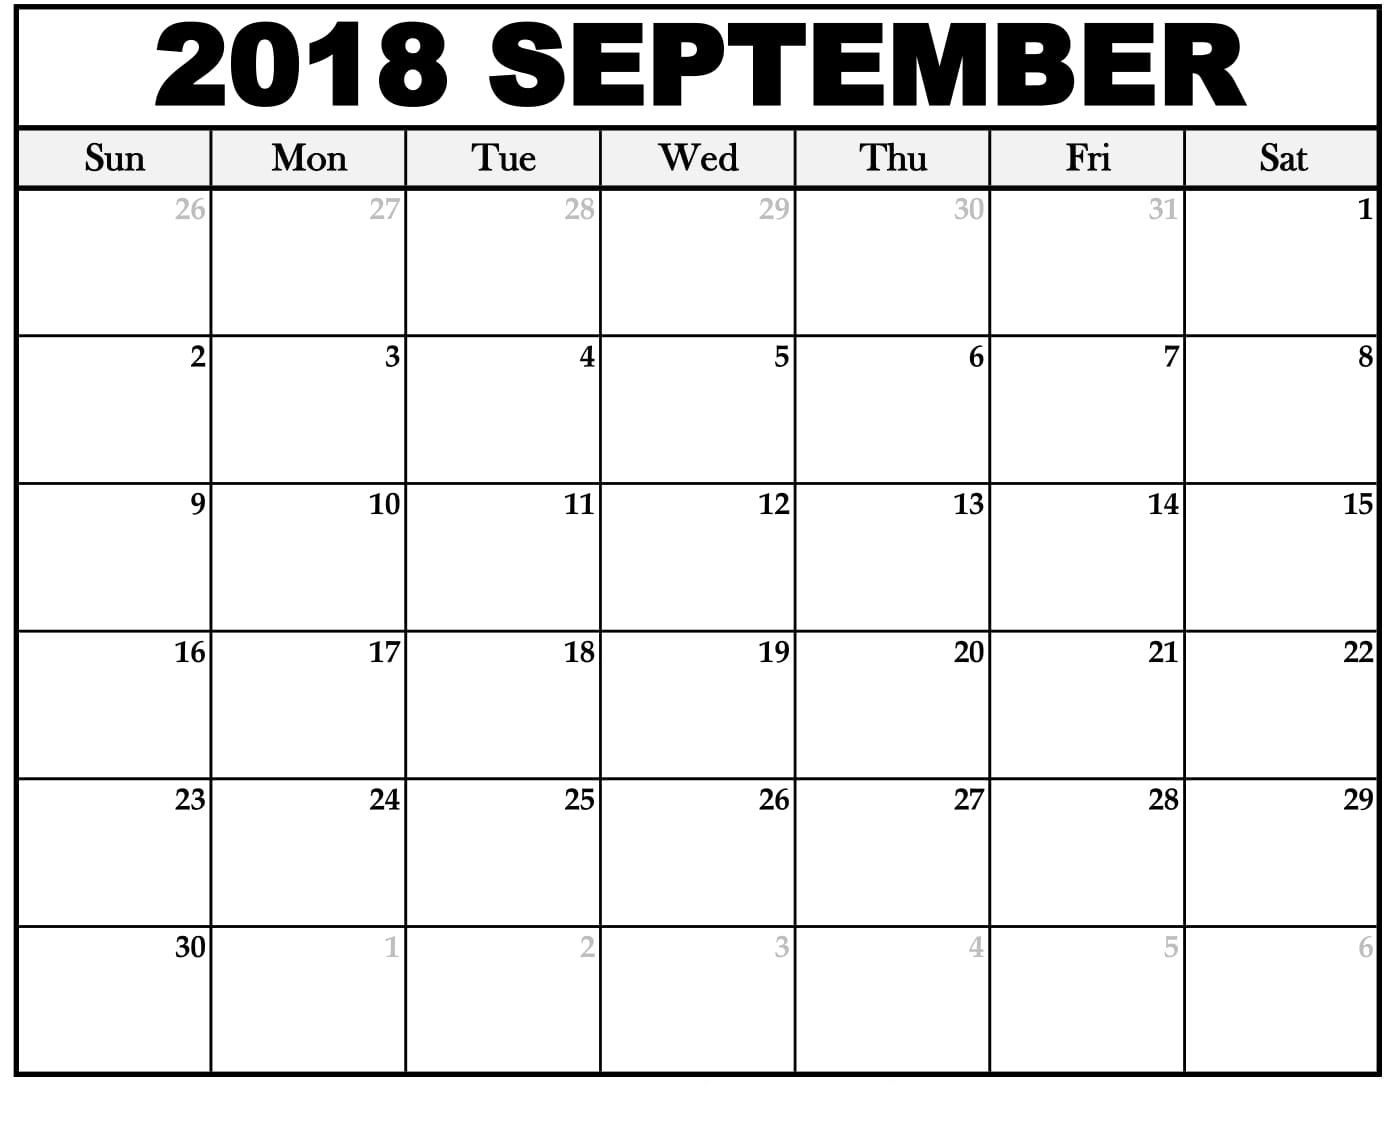 September Calendar 2018 Template In Word Format